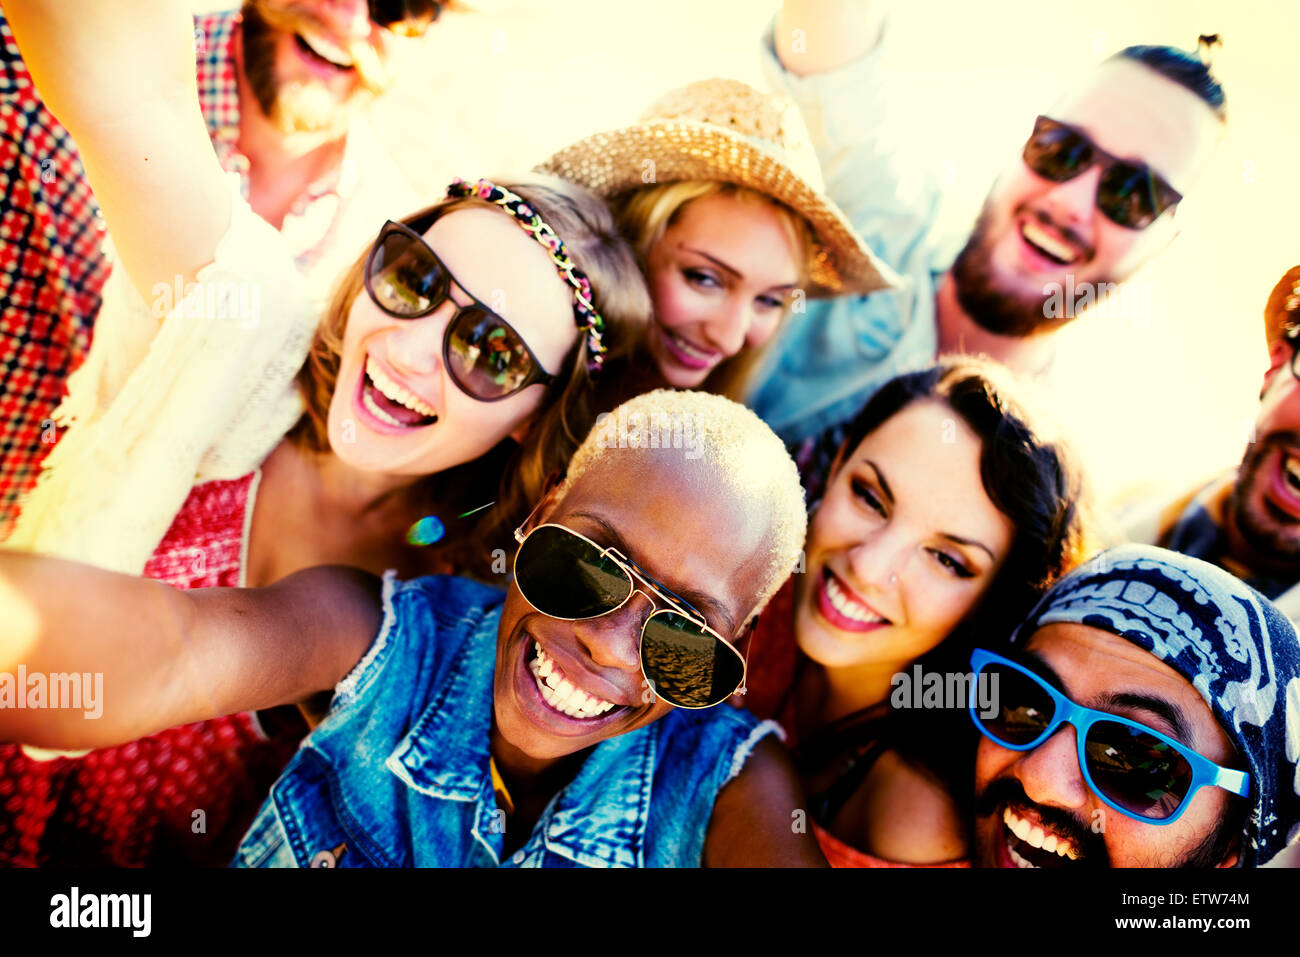 Diverse People Beach Summer Friends Fun Selfie Concept - Stock Image